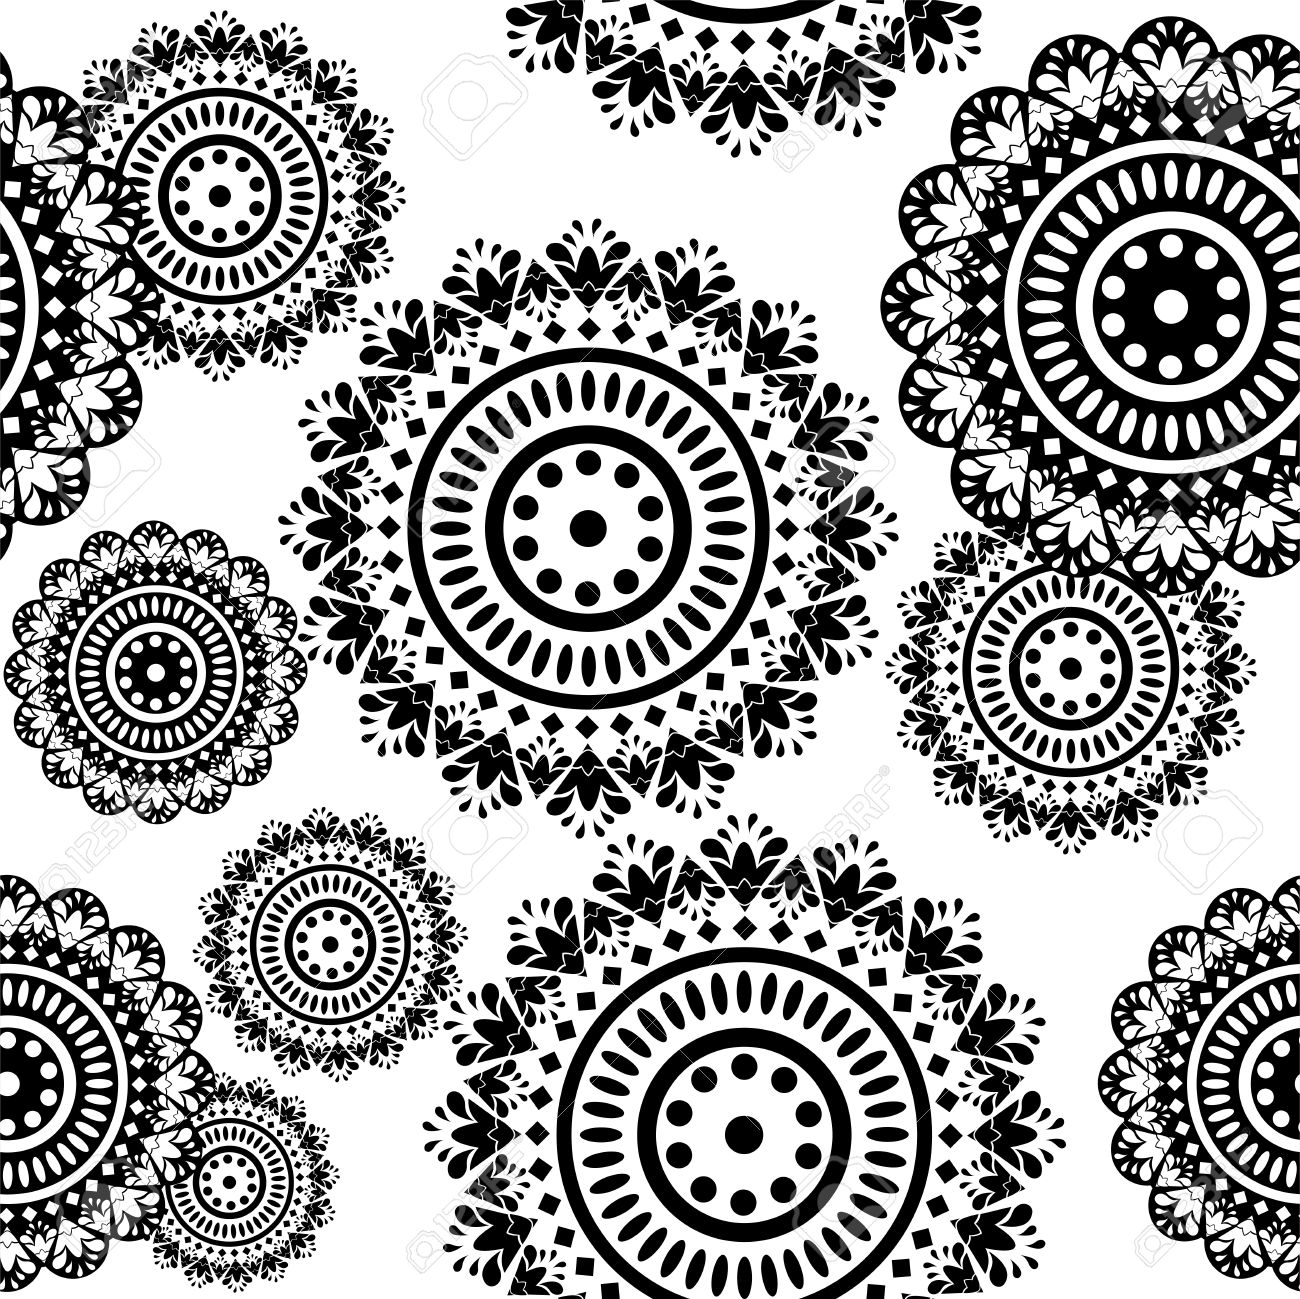 Black and white ornaments - Vector Seamless Pattern Of Round Black And White Ornaments